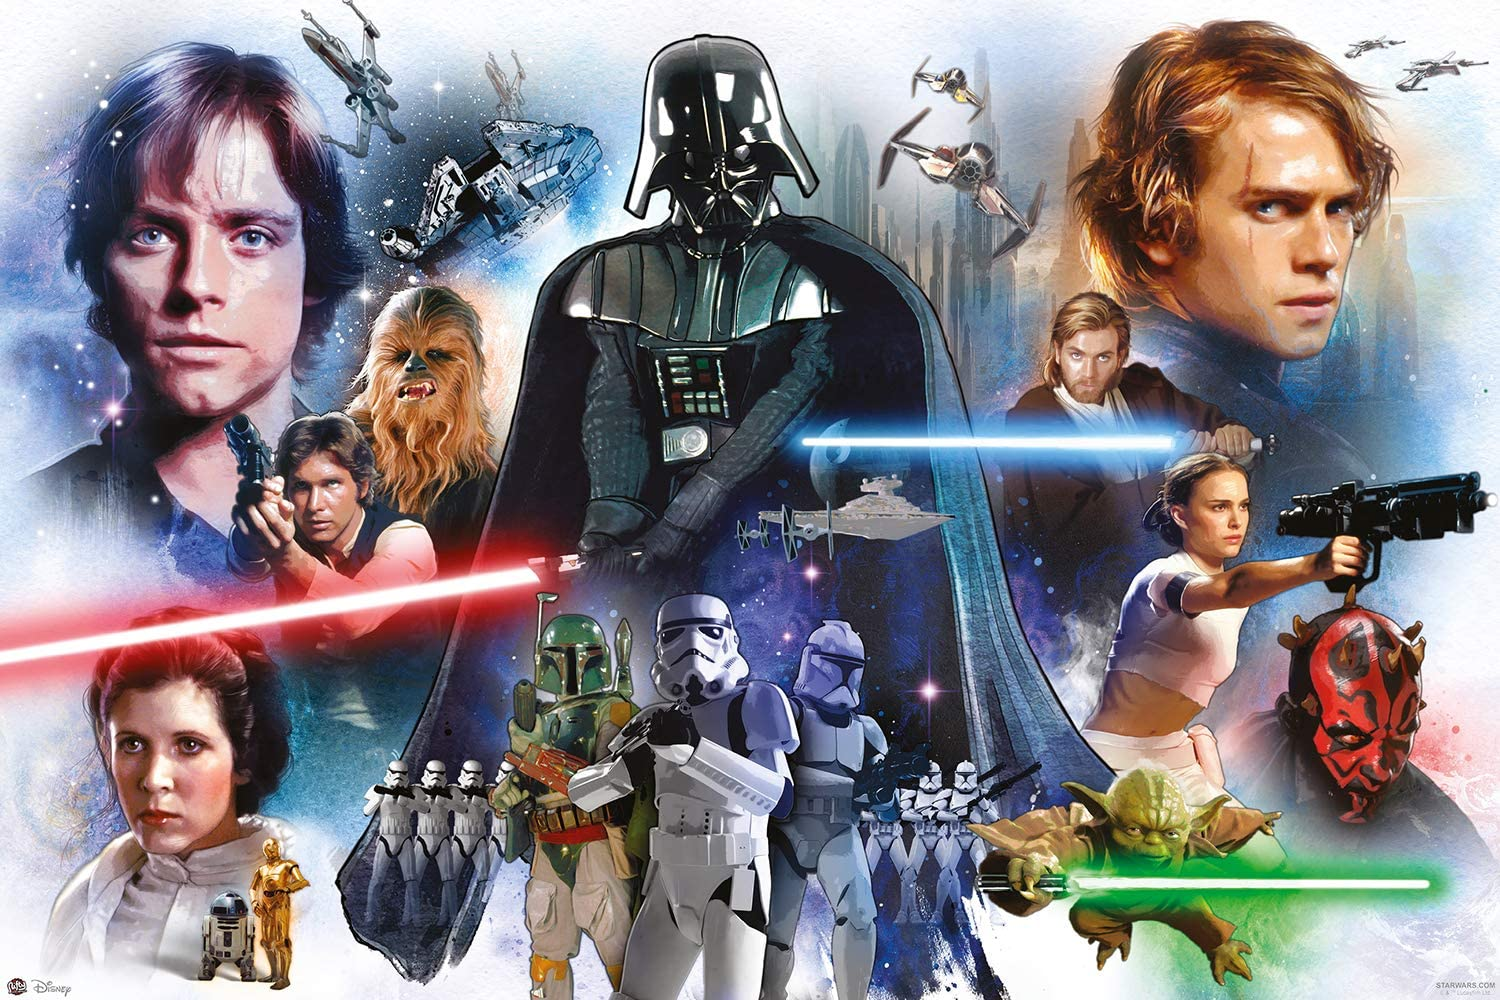 Star Wars Anthology - Episode I, II, III, IV, V & VI - Movie Poster/Print (White Character Montage) (Size: 36 inches x 24 inches)